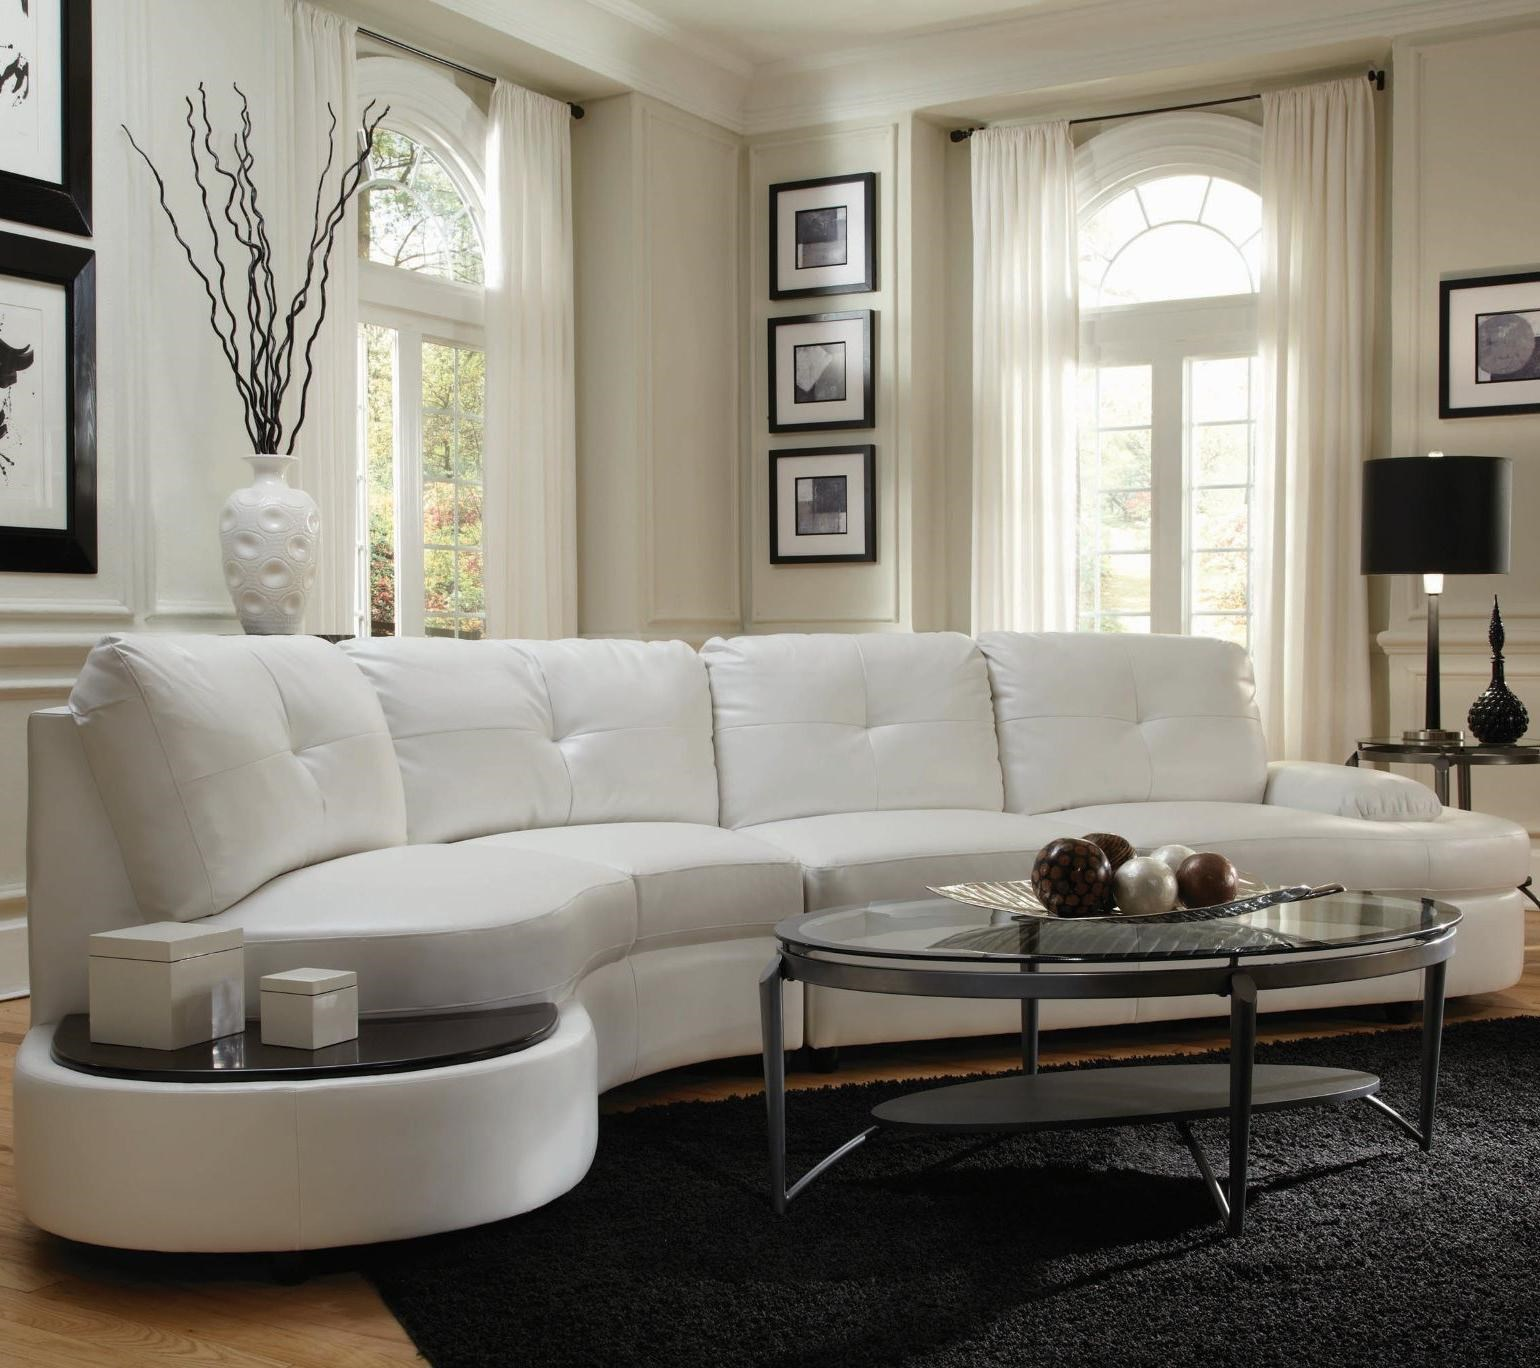 coaster talia 503431 contemporary sectional conversation sofa with rh dunkandbright com Sectional Sofa with Table Behind It Side Table with Sofa Chair